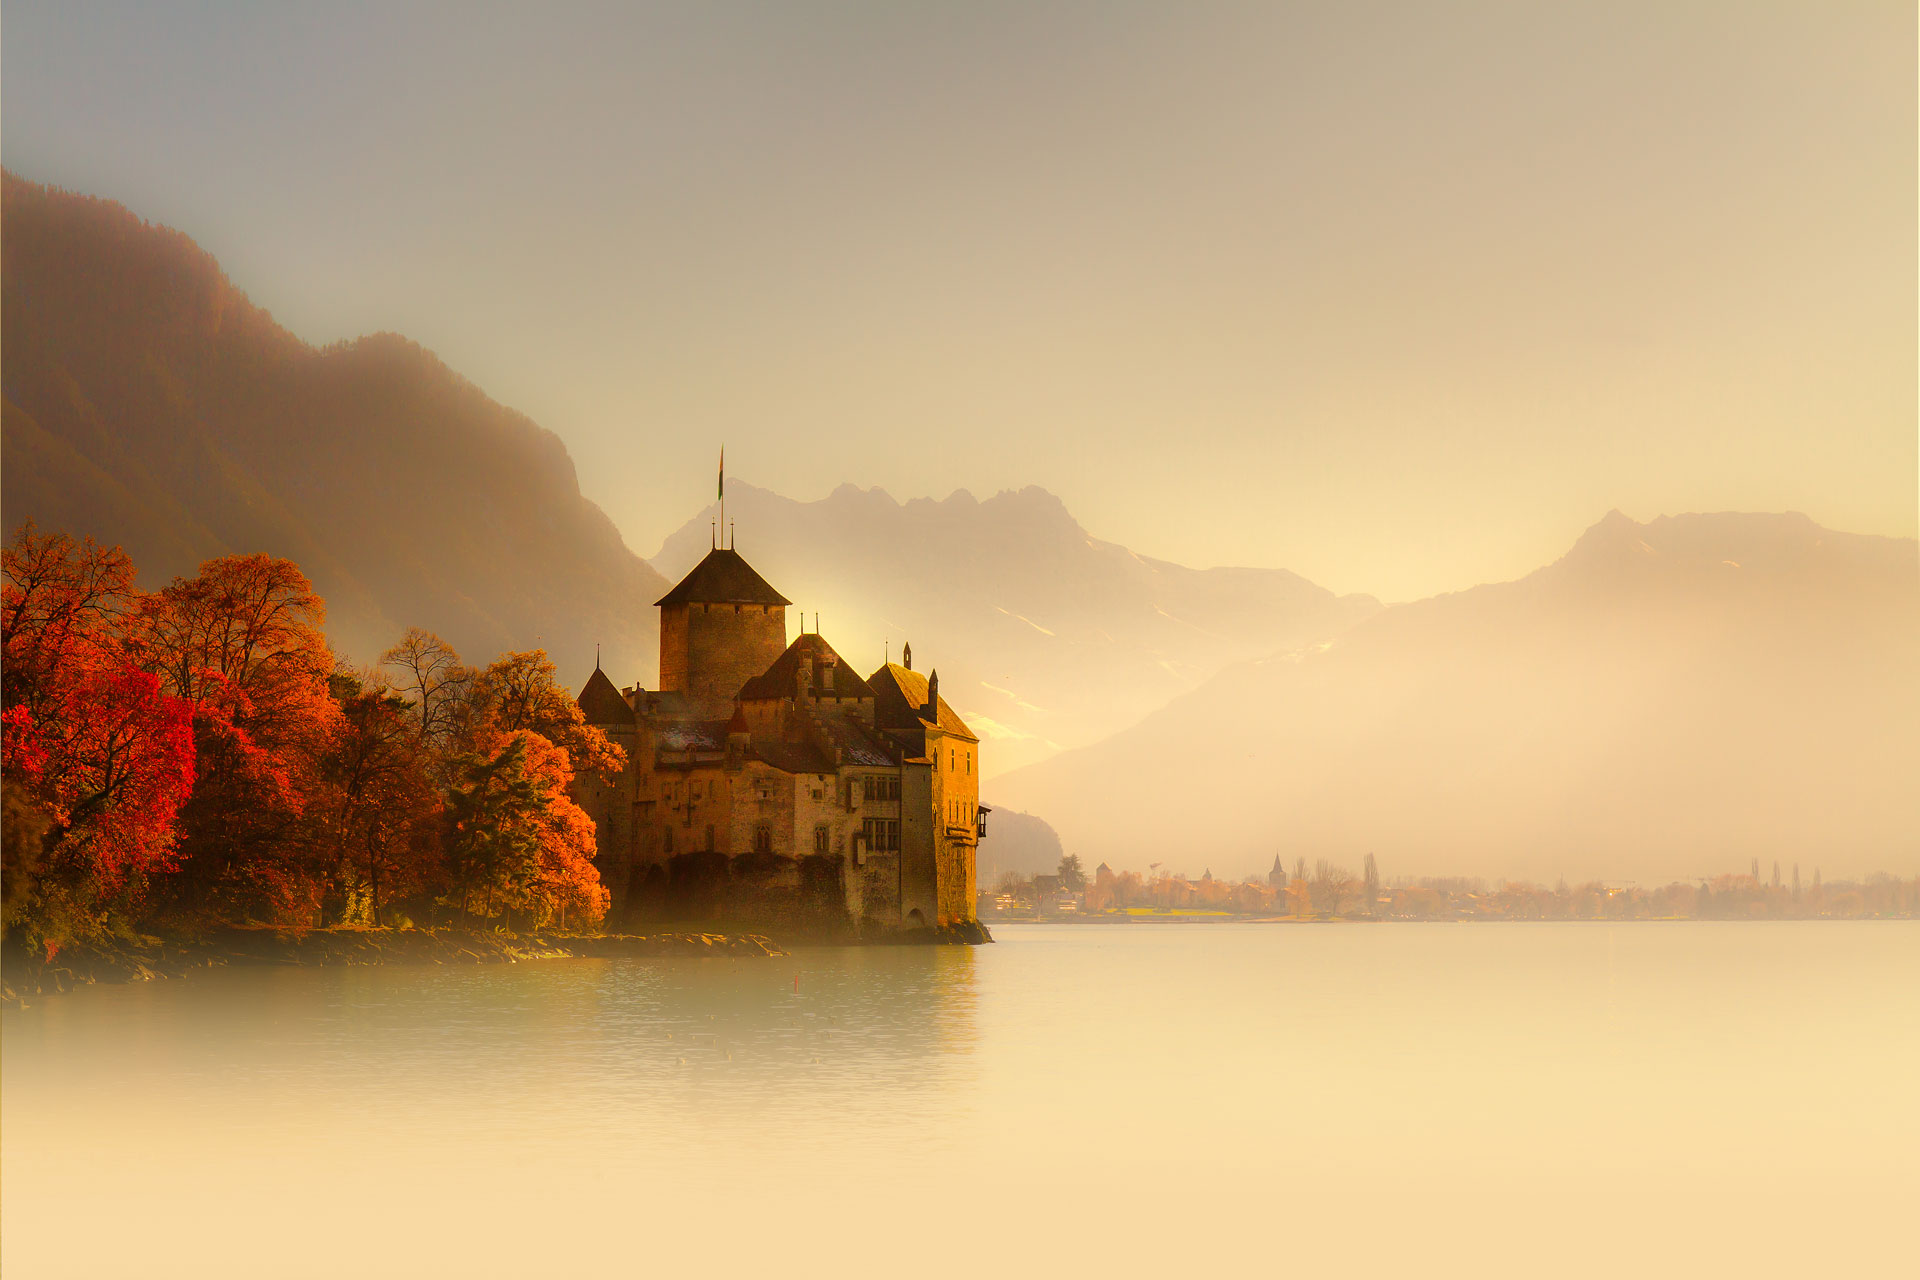 Autumn-in-Chillon-Castle-Montreux-Switzerland.jpg